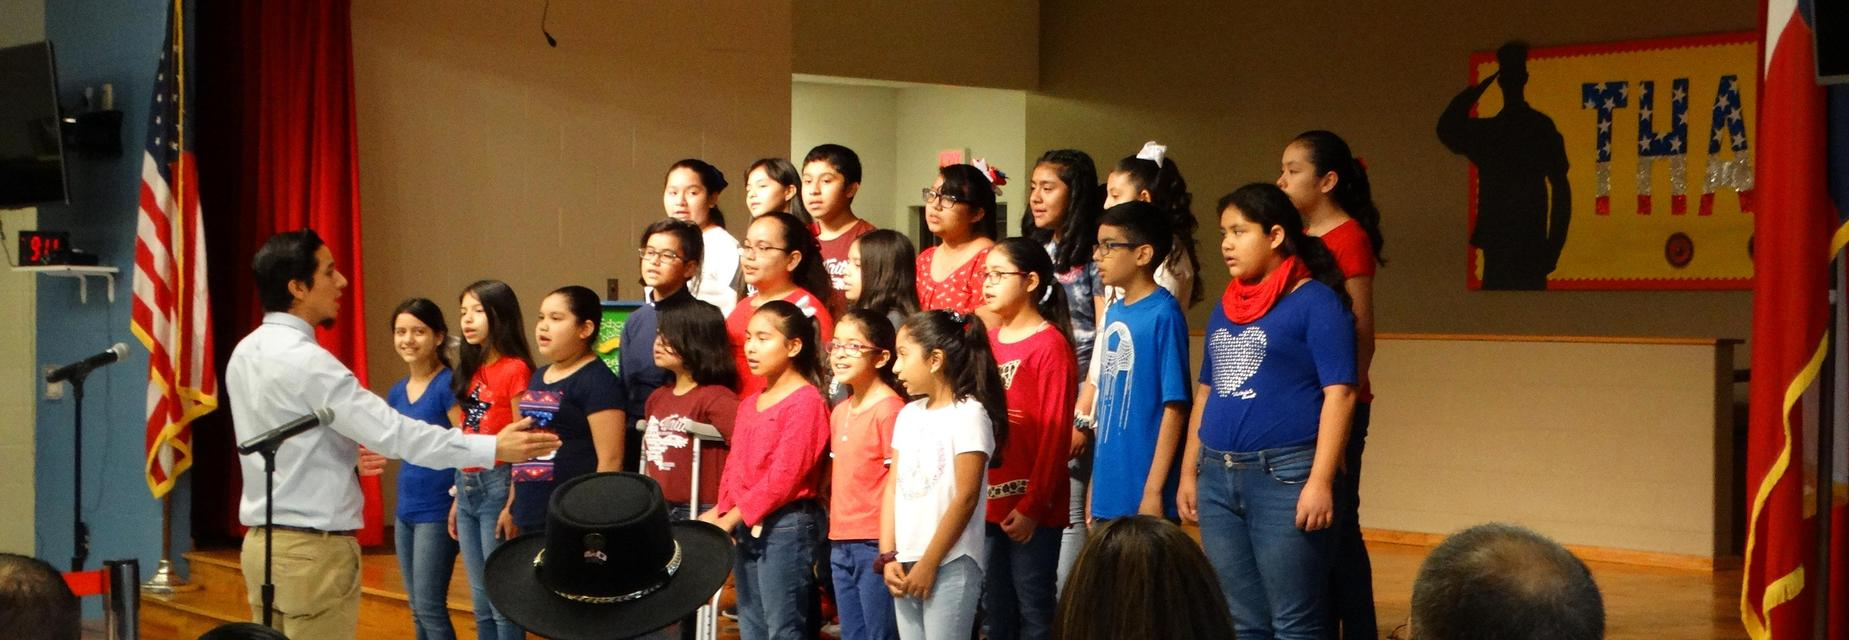 Choir performance for Veterans Day